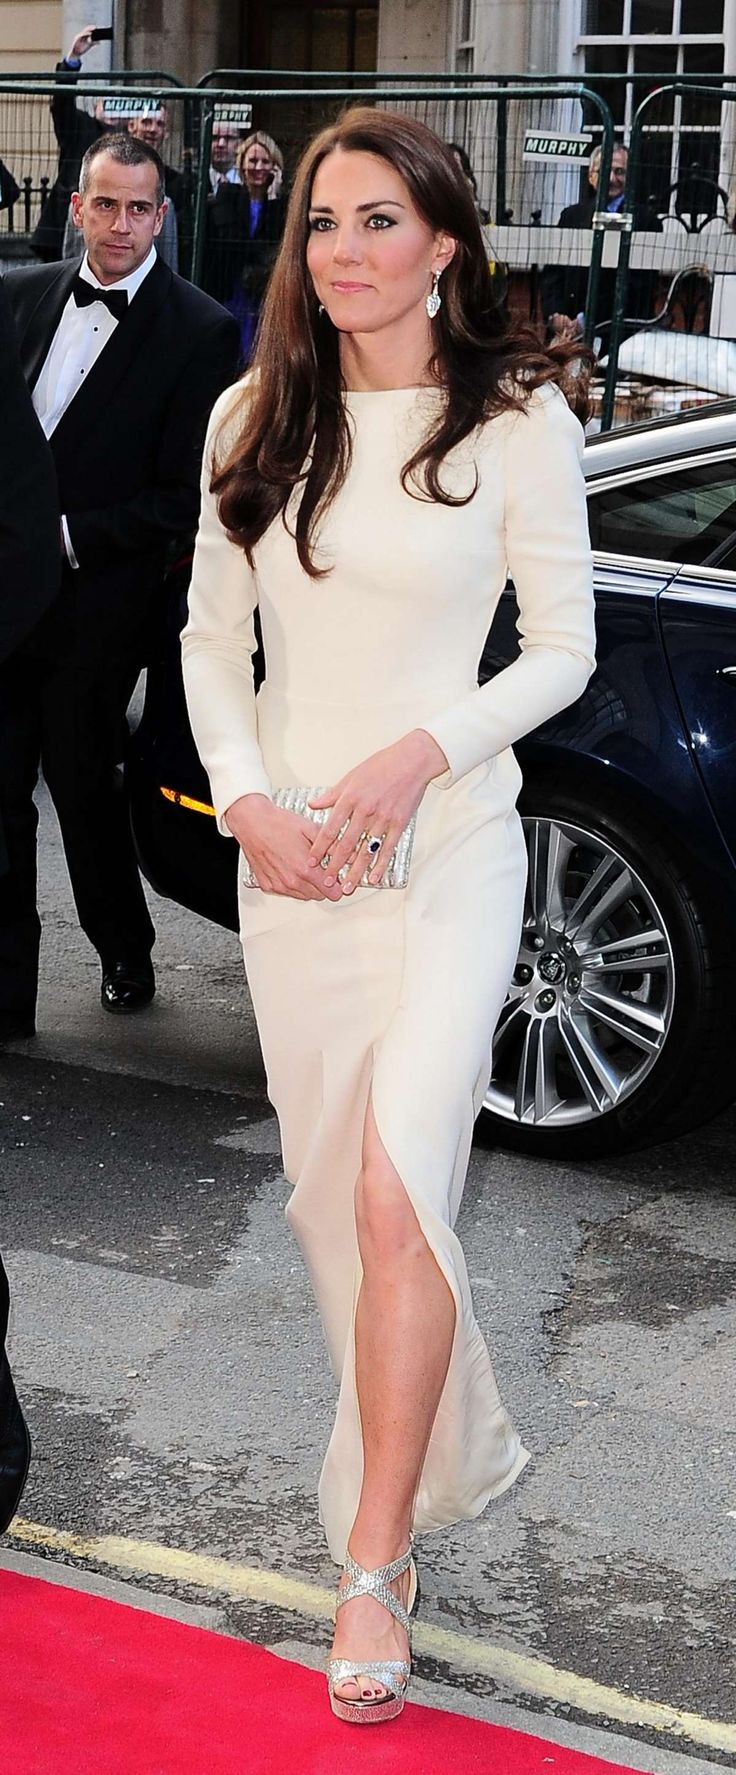 Kate Middleton proves that you don't need a lot of jewelry to look elegant. Simple designs that flatter your shape look fabulous on anyone.